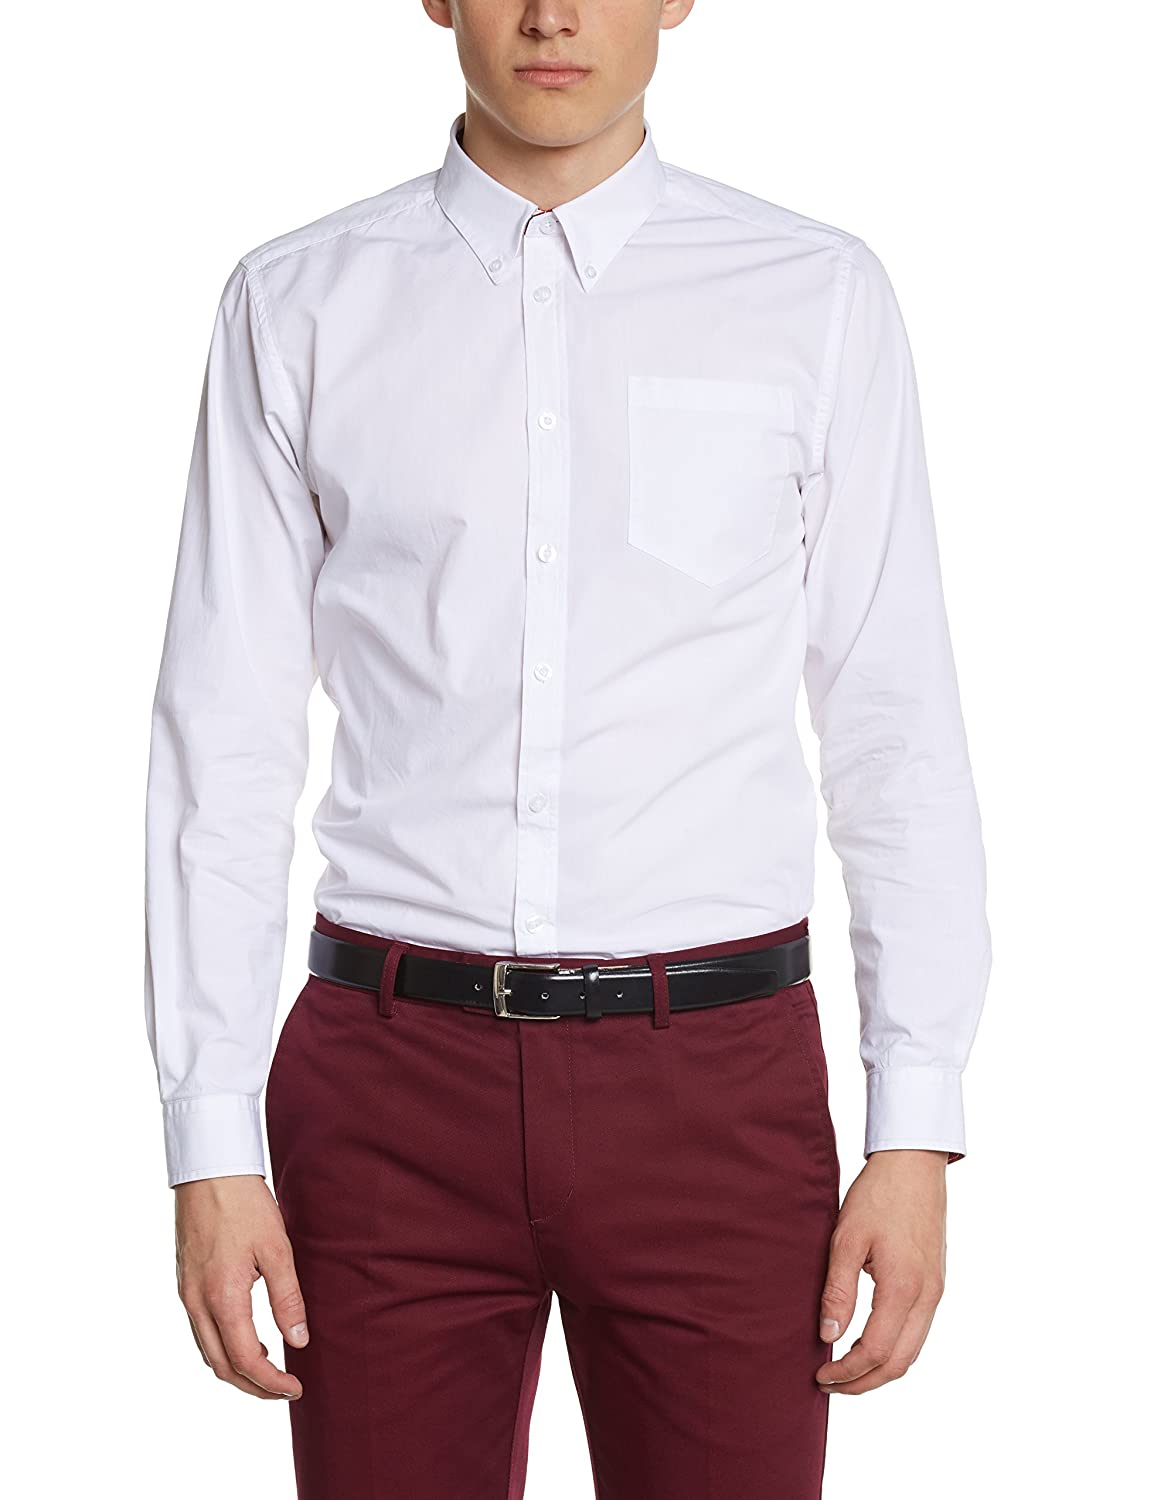 TALLA L. Merc of London Camisa para Hombre